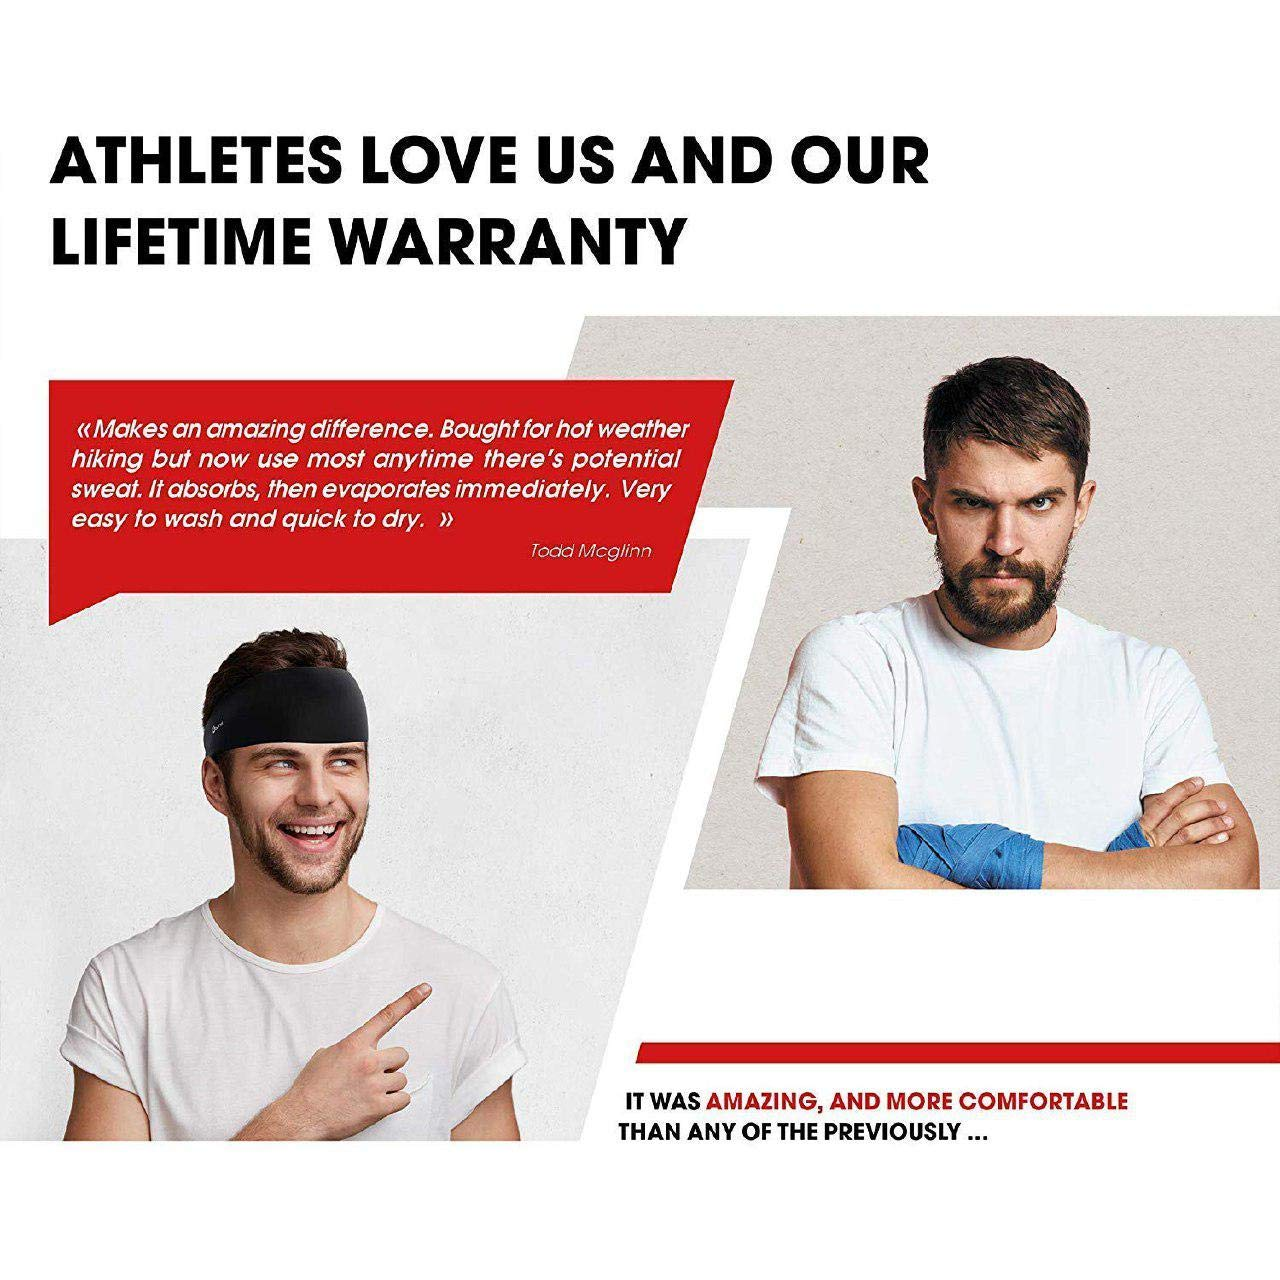 Self Pro Mens Headbands 2 Pack Guys Sweatband & Sports Headband for Running, Cross Training, Racquetball, Working Out - Performance Stretch & Moisture Wicking by Self Pro